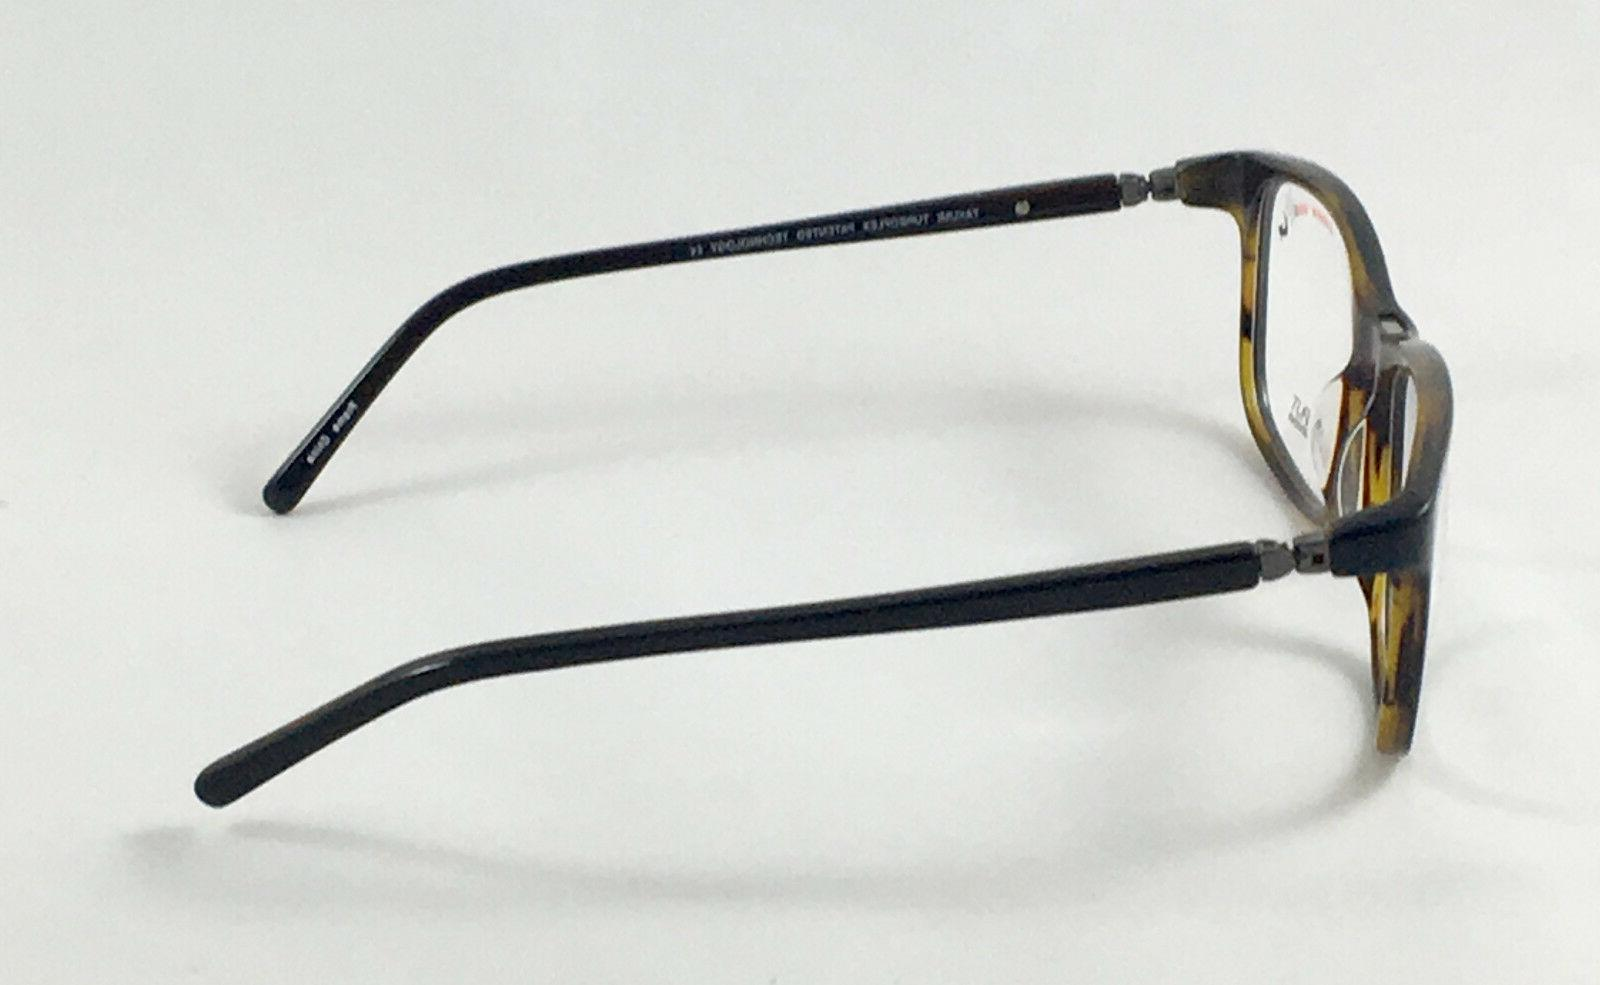 New Men's Eyeglasses Clip On